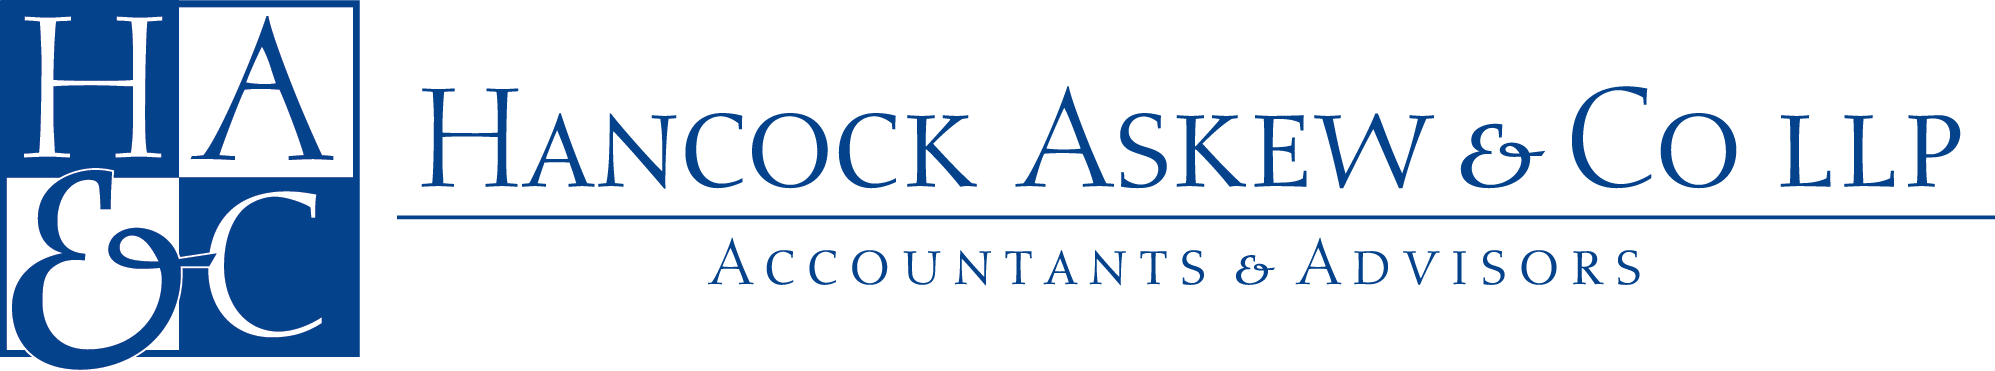 Hancock Askew & Co., LLP